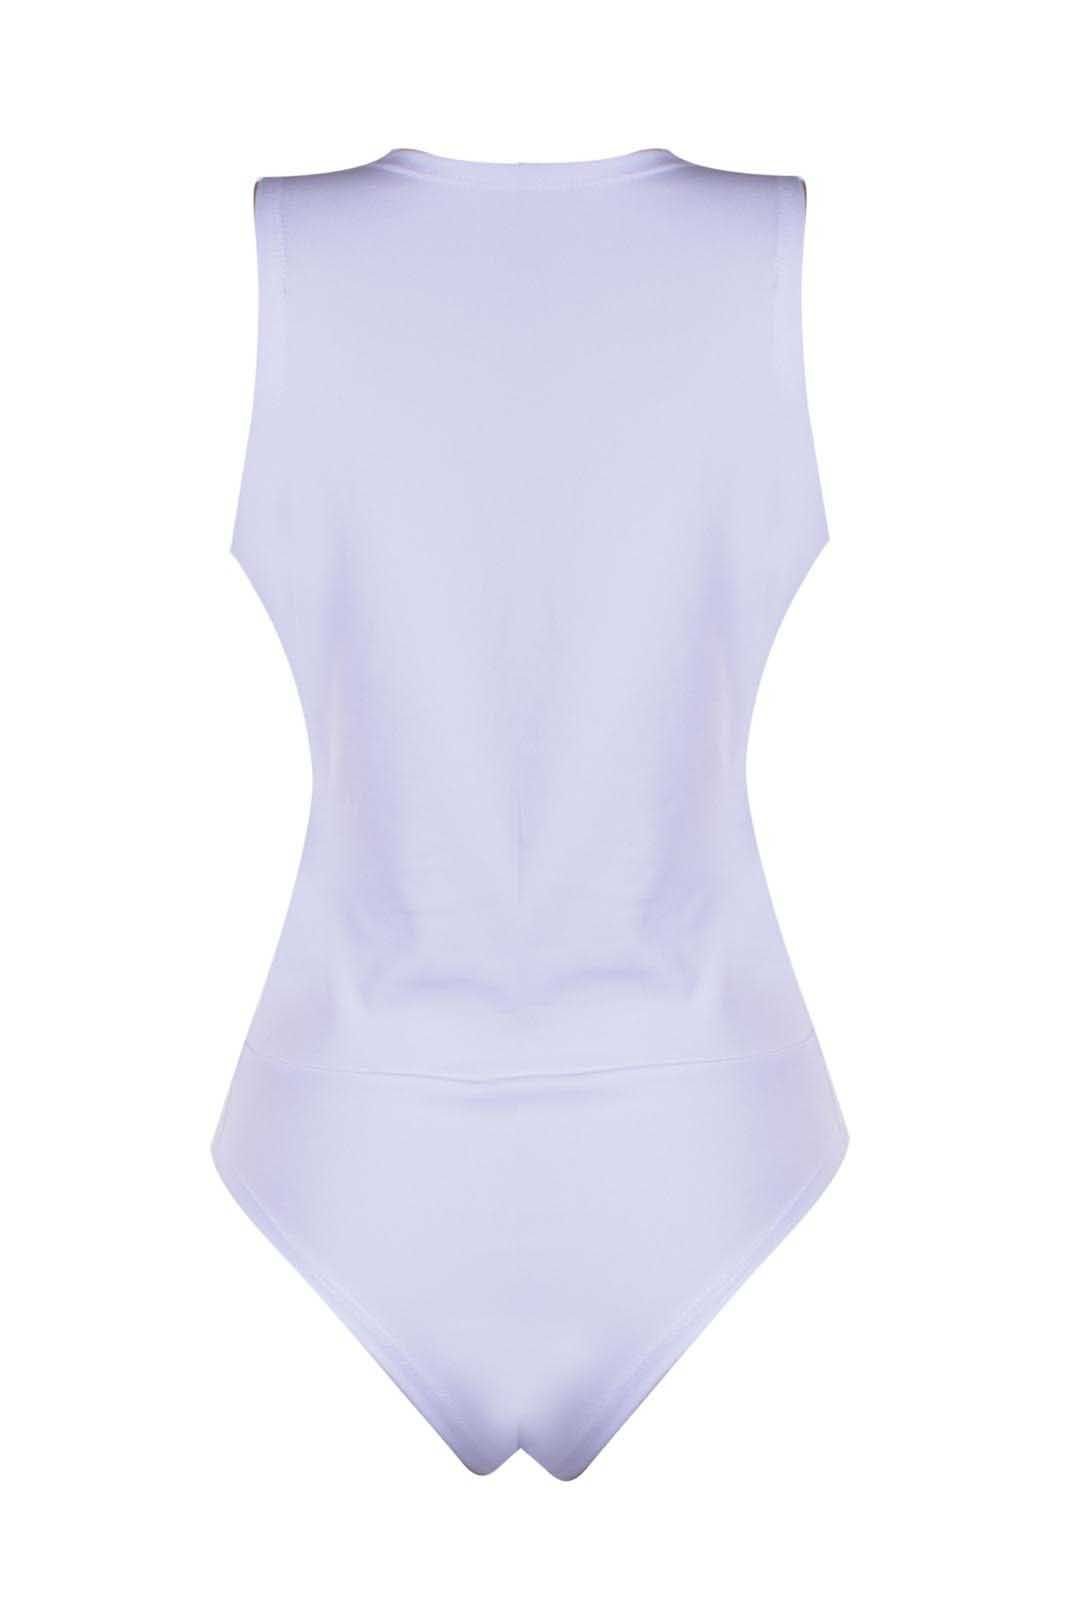 Body Outlet Dri BM Estilo Regata Alça Grossa Nó Decote Frontal Branco